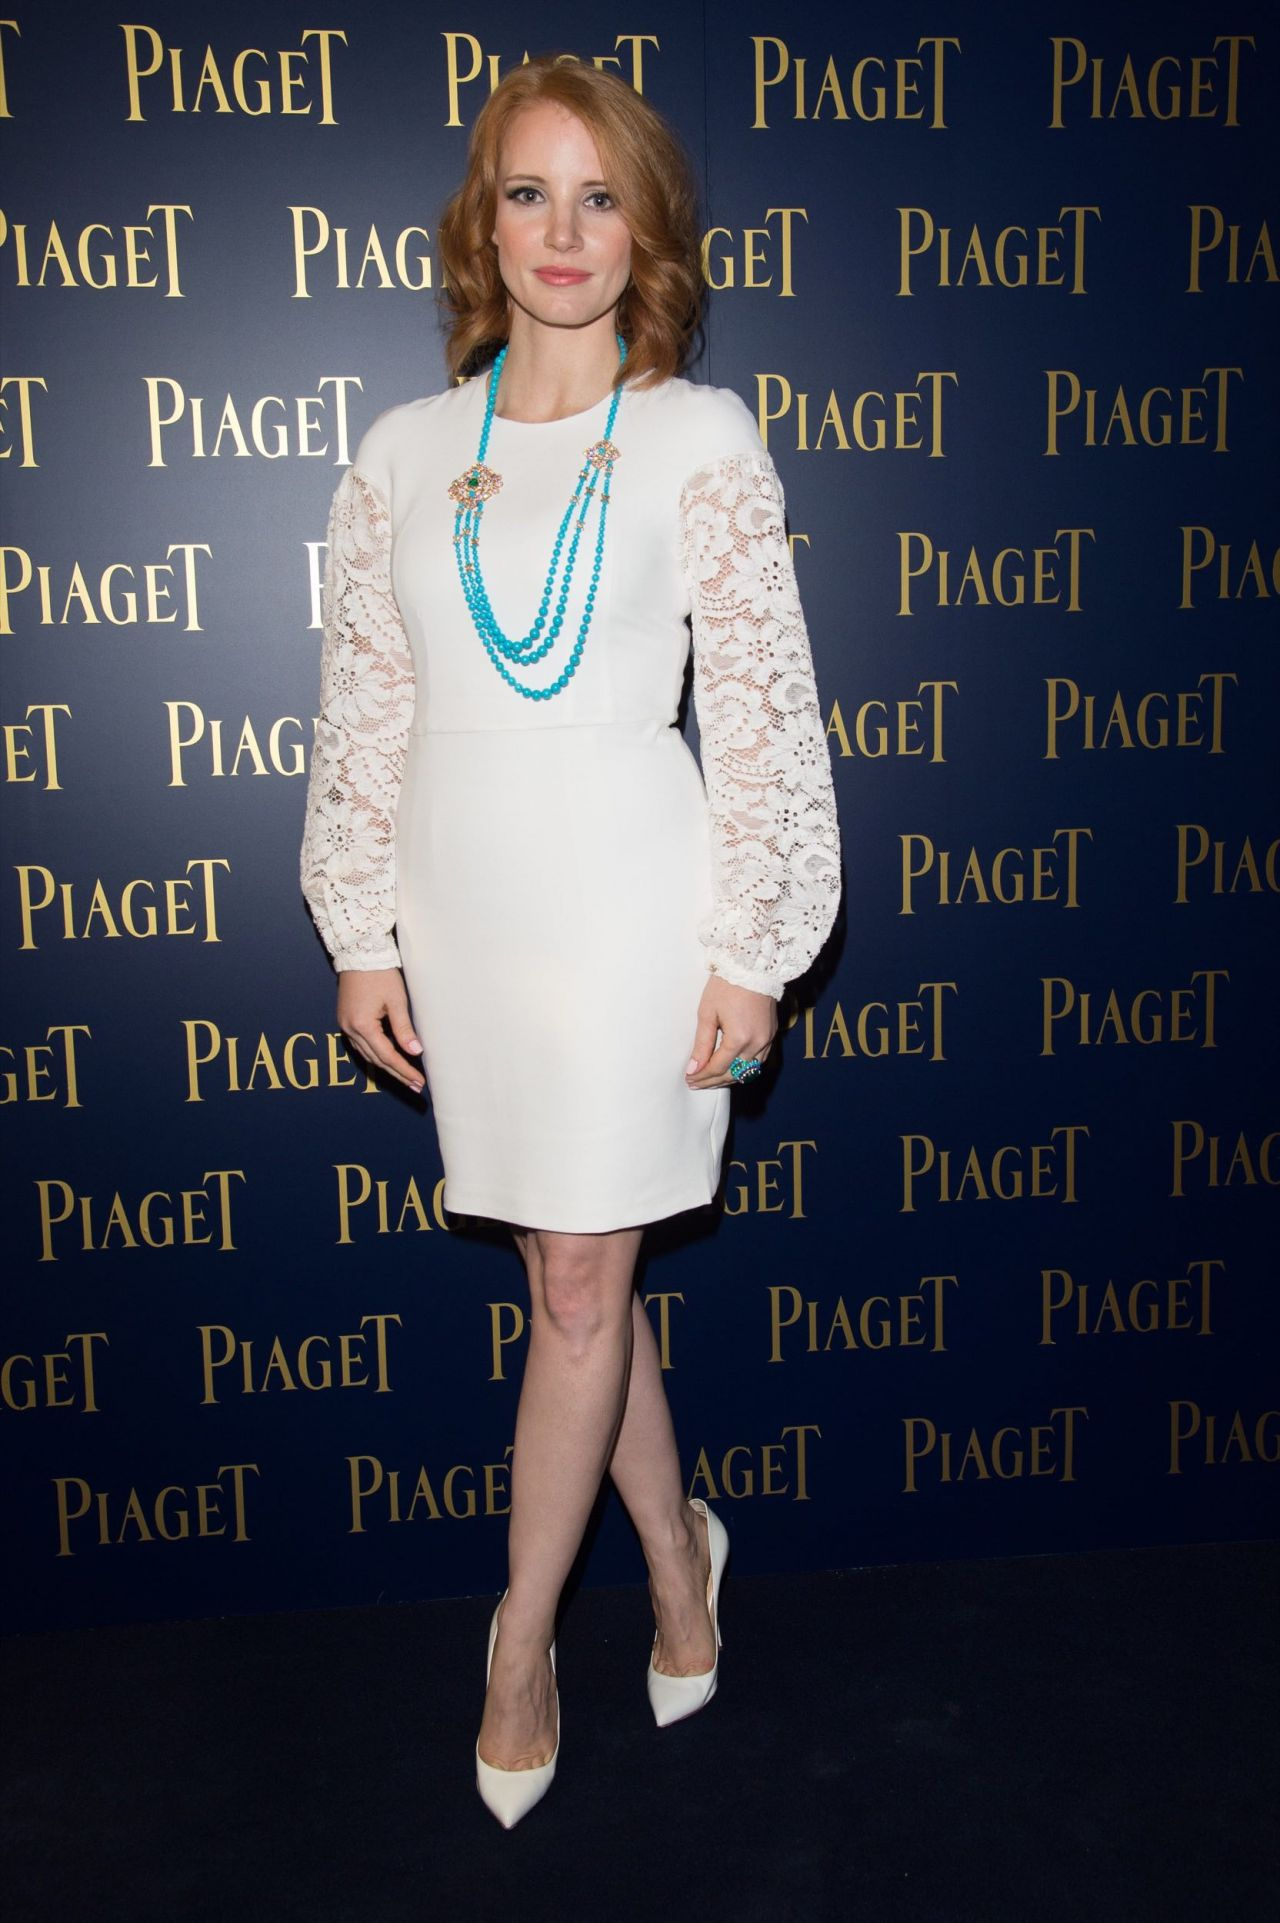 jessica-chastain-piaget-grand-opening-in-milan-september-2015_1